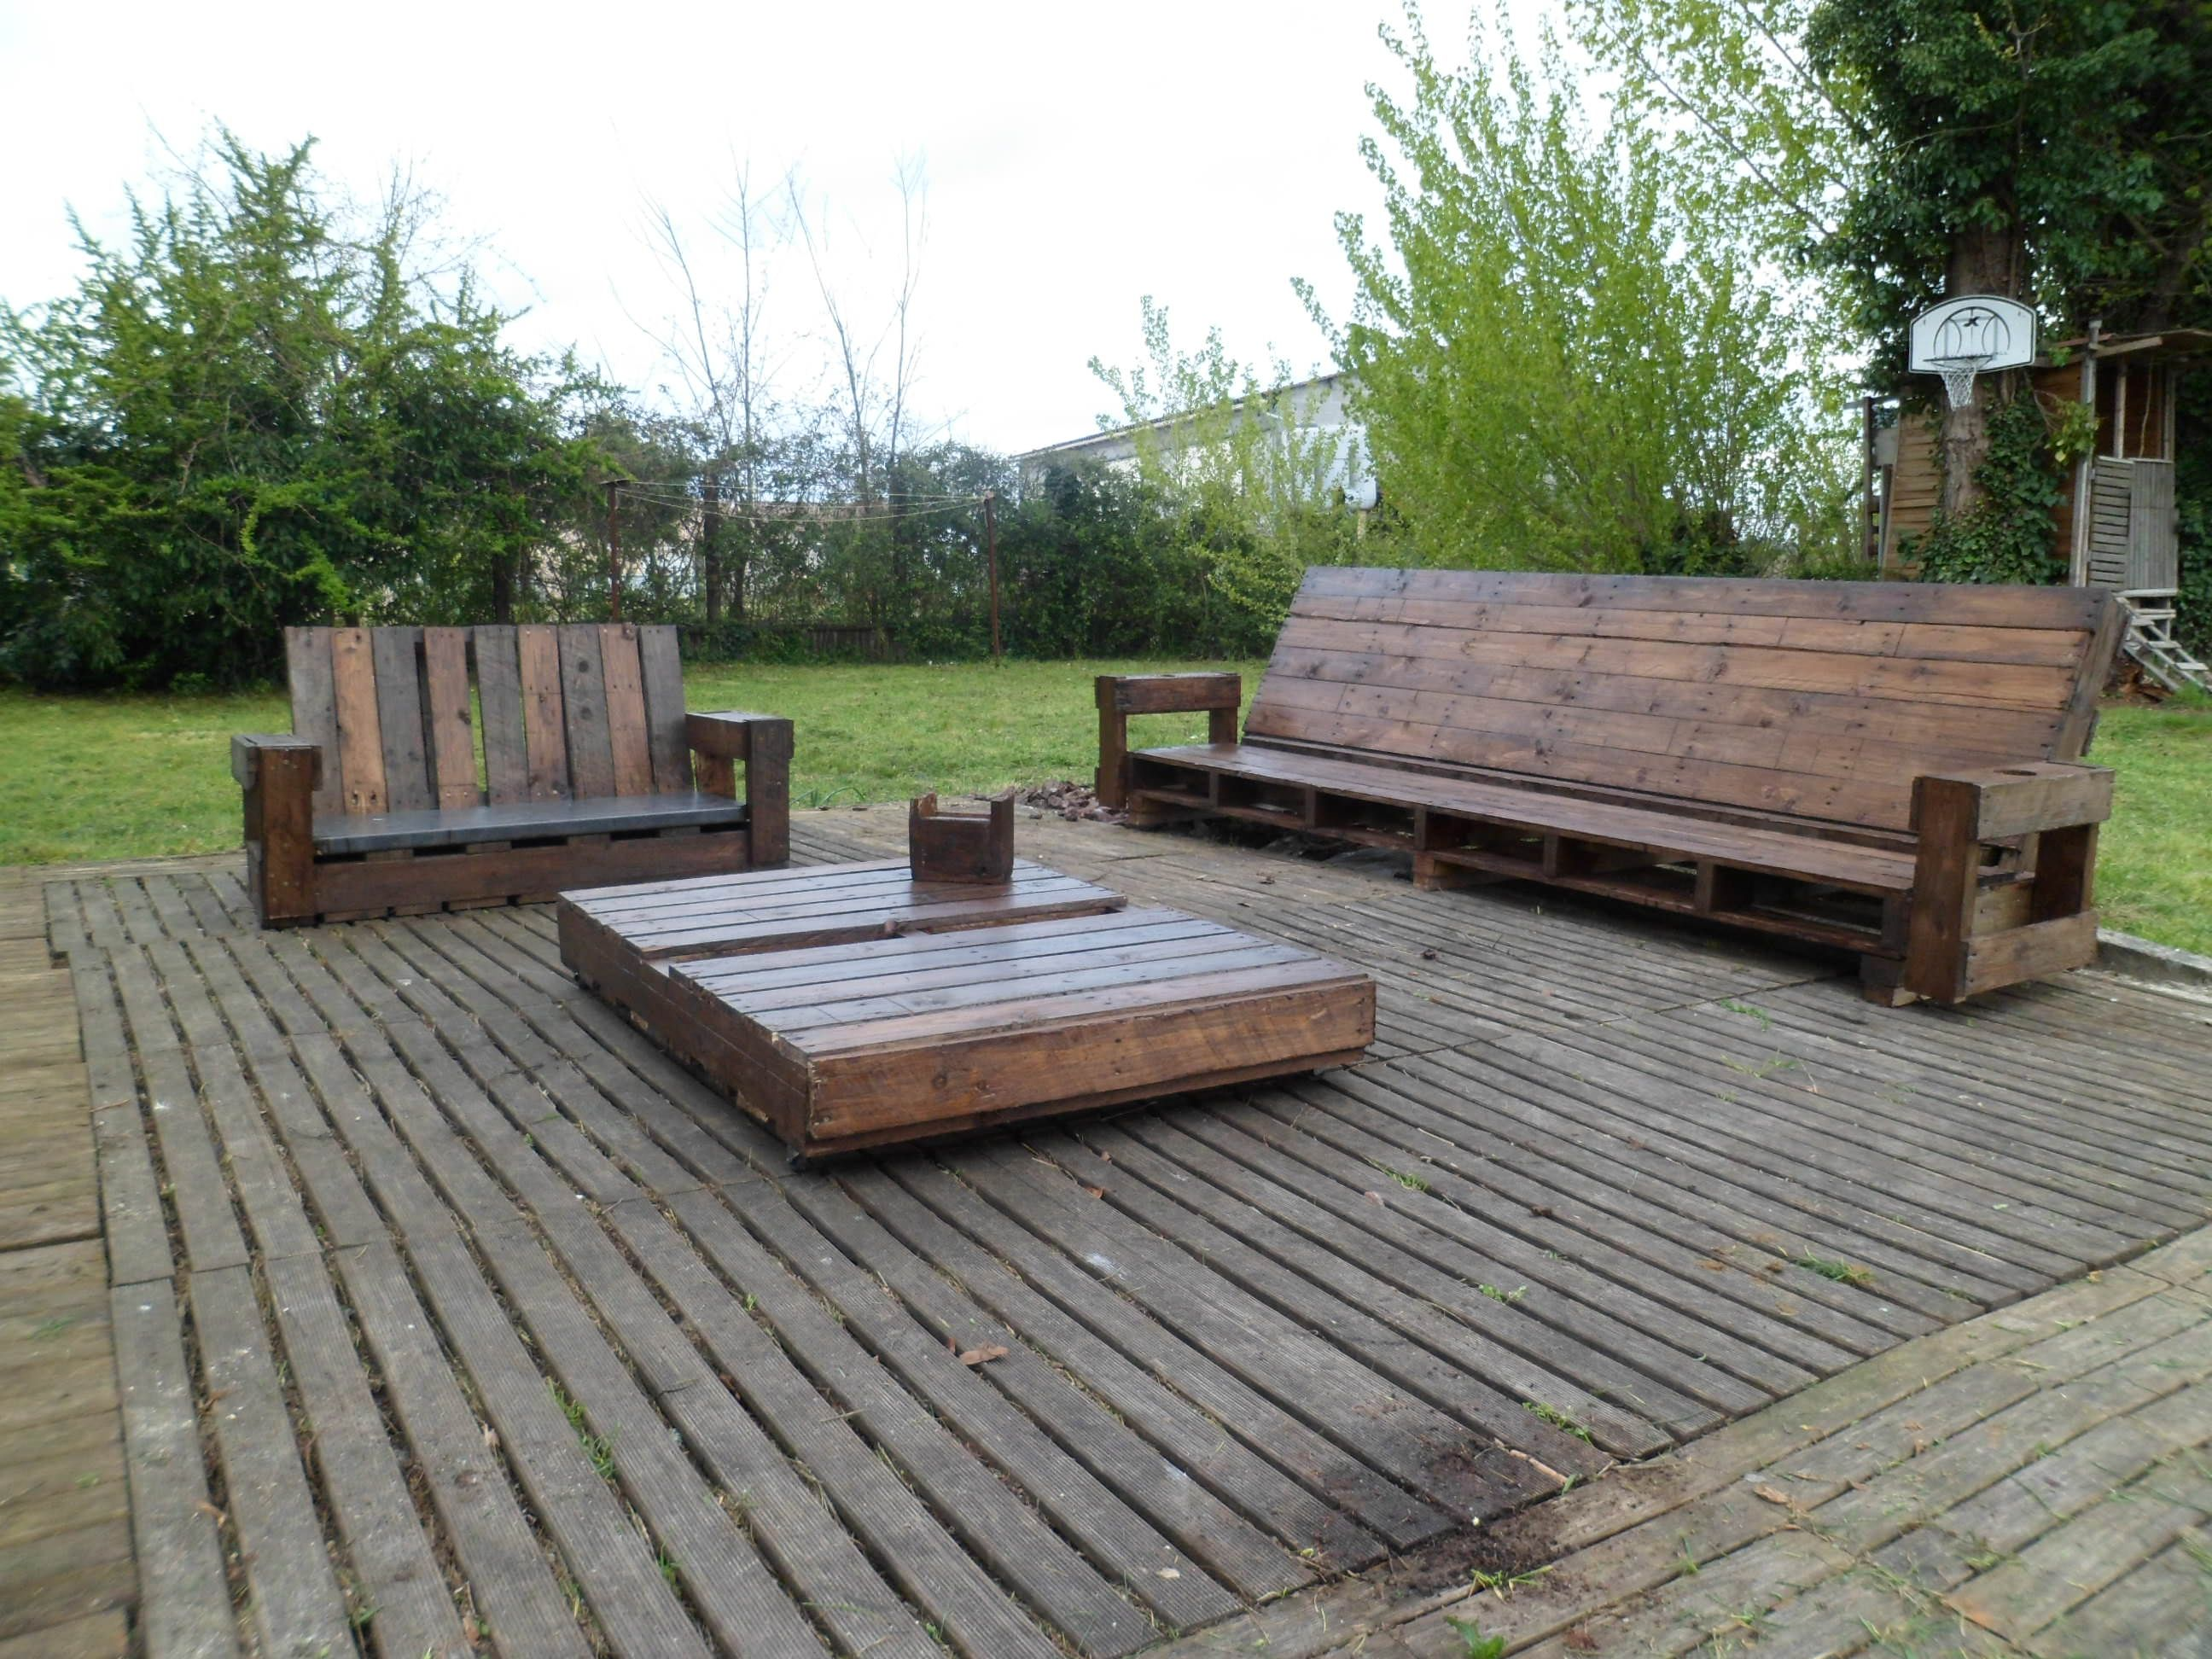 Giant Outdoor Set Made Out Of Repurposed Pallets | cool stuff ...